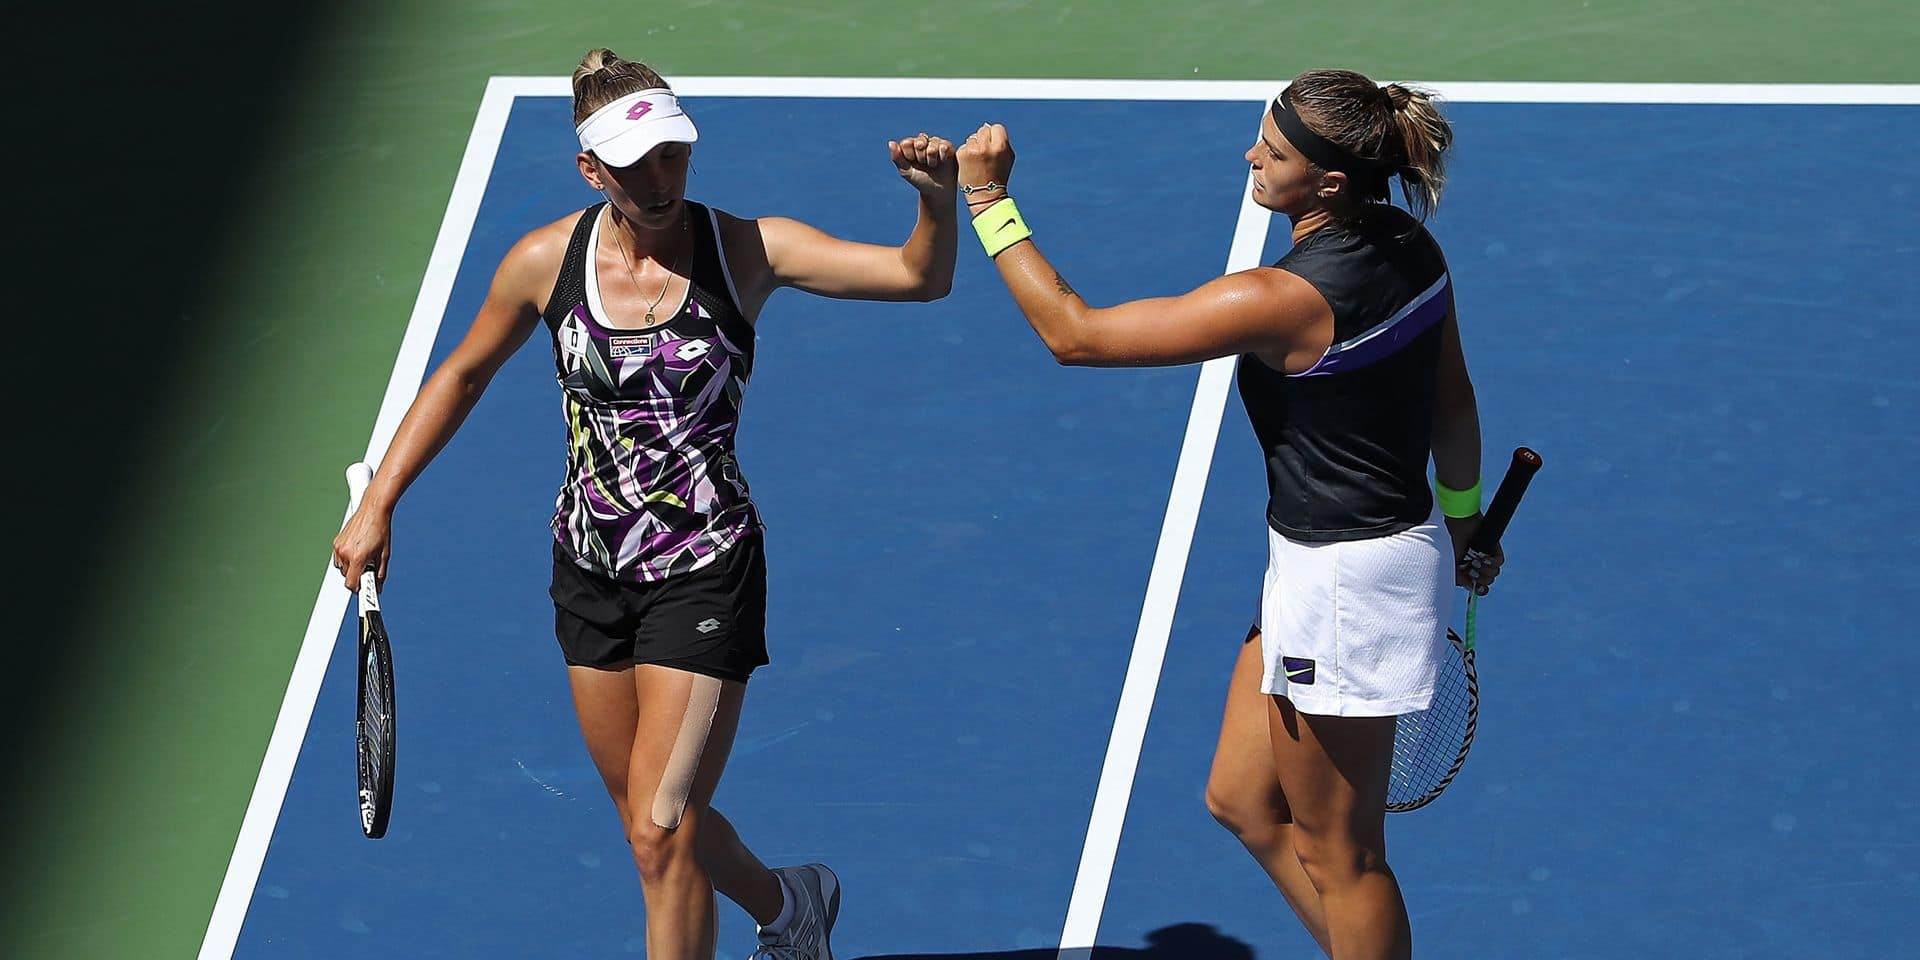 NEW YORK, NEW YORK - SEPTEMBER 03: Elise Mertens of Belgium (L) celebrates the point with Aryna Sabalenka of Belarus during their Women's Doubles quarterfinal match against Saisai Zheng and Yingying Duan of China on day nine of the 2019 US Open at the USTA Billie Jean King National Tennis Center on September 03, 2019 in the Queens borough of New York City. Elsa/Getty Images/AFP == FOR NEWSPAPERS, INTERNET, TELCOS & TELEVISION USE ONLY ==